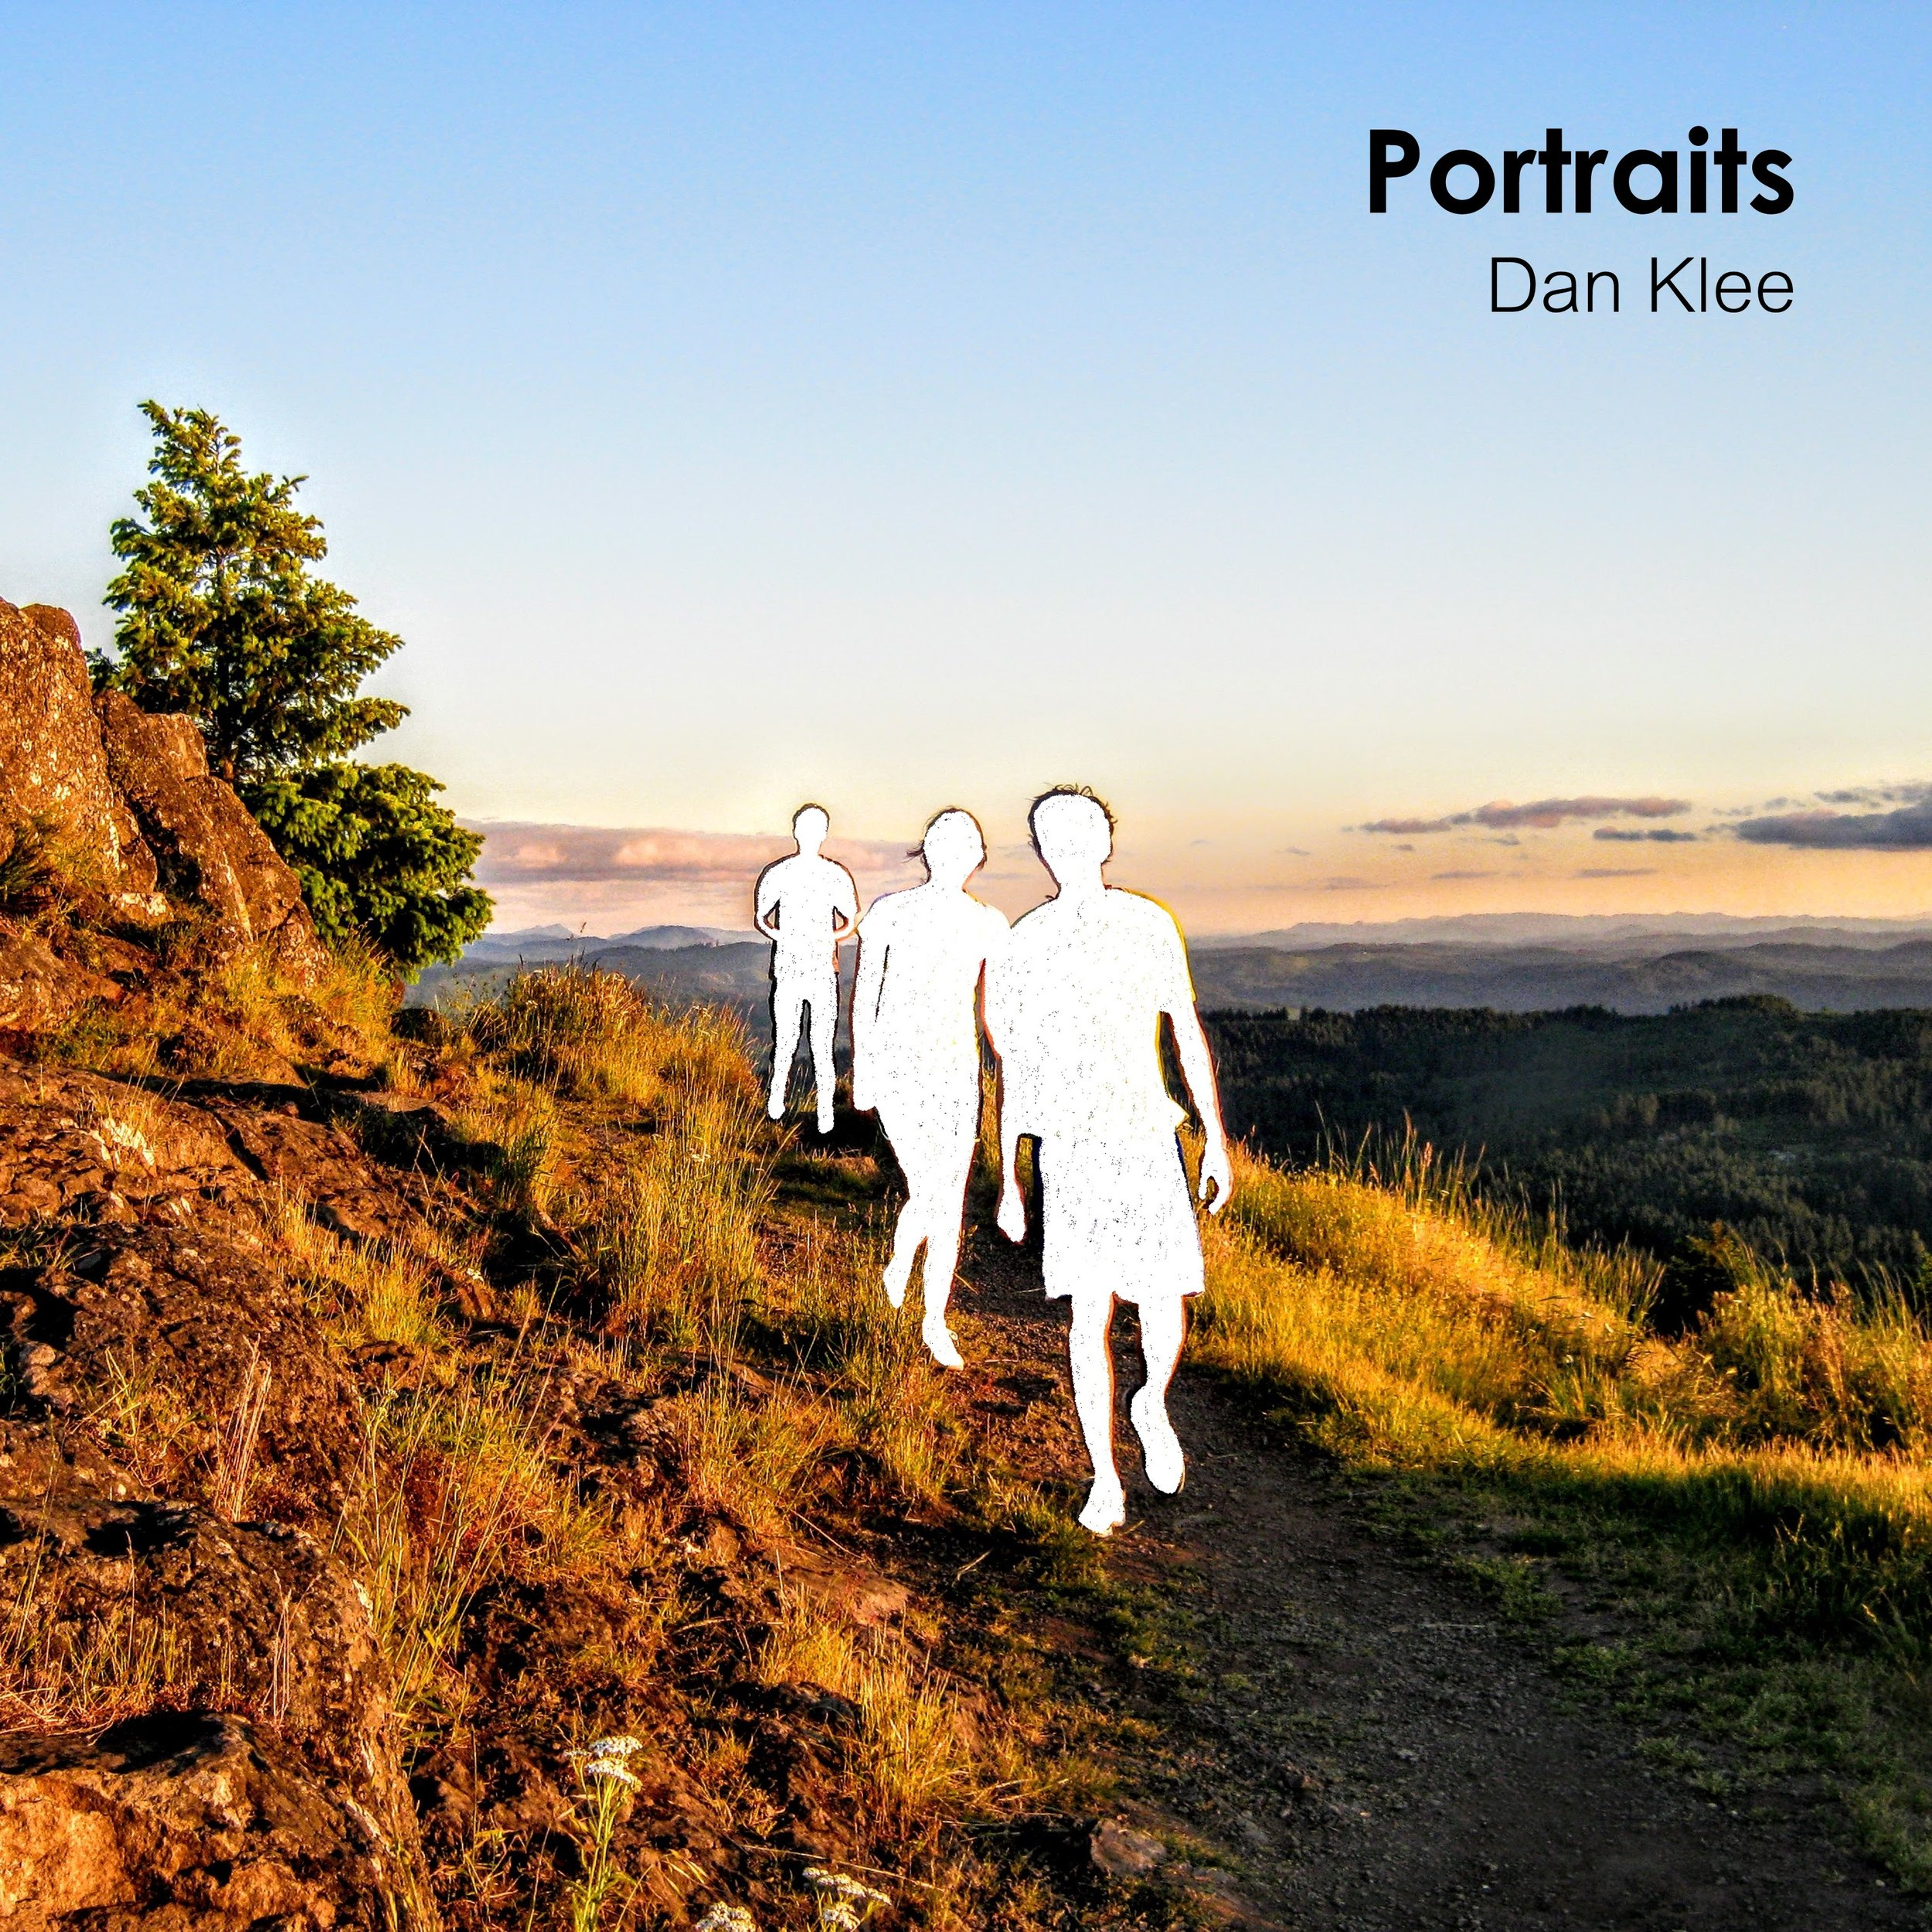 """Portraits - Released 6/21/19""""Portraits"""" is an excitingly eclectic collection of musical vistas about people and the places they inhabit. Borrowing both the theatric stylings of artists like Springsteen and the humorous nonchalance of bands like Weezer, listeners meet a revolving door of characters, scenes, and topics as varied as youthful optimism, love, creative frustration, political annihilation, fast food drive-ins, and Old West-style shootouts."""